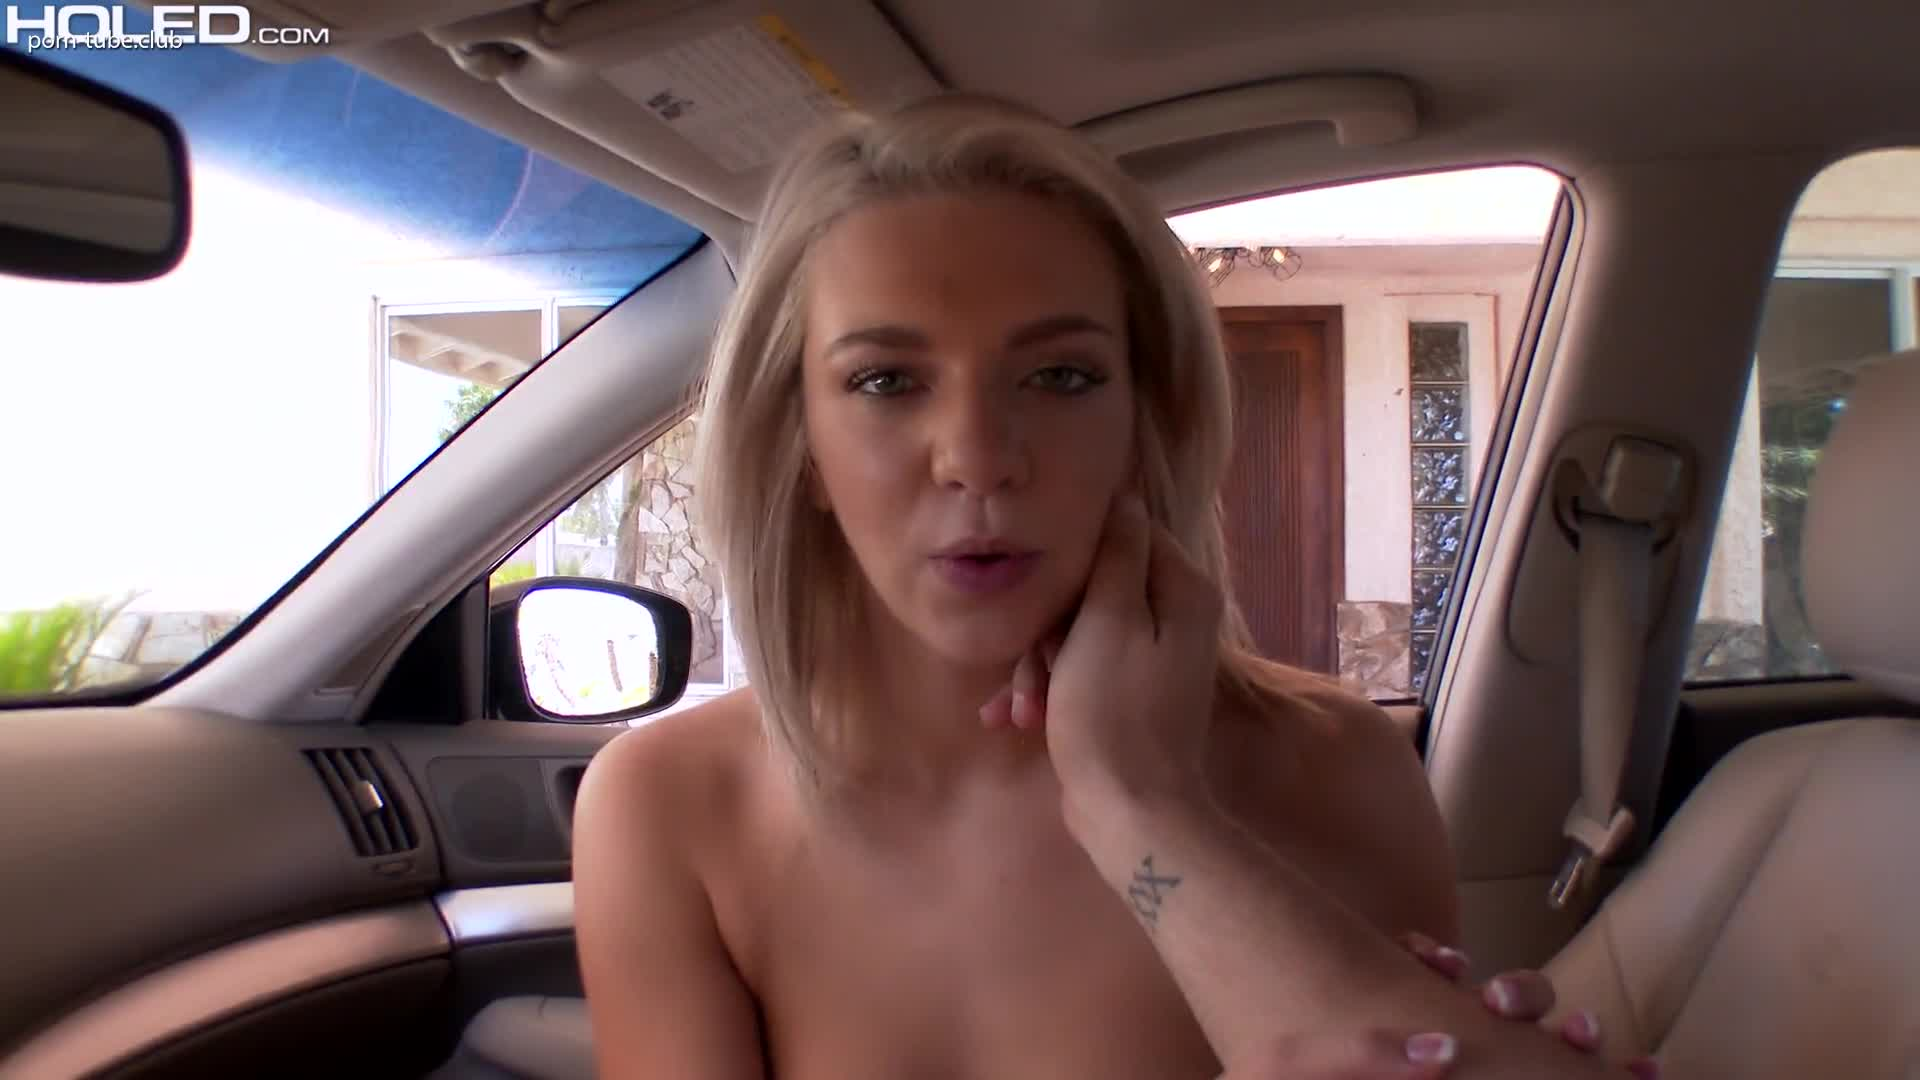 Holed 16.08.30 Tiffany Watson Stepsister Begs For Anal